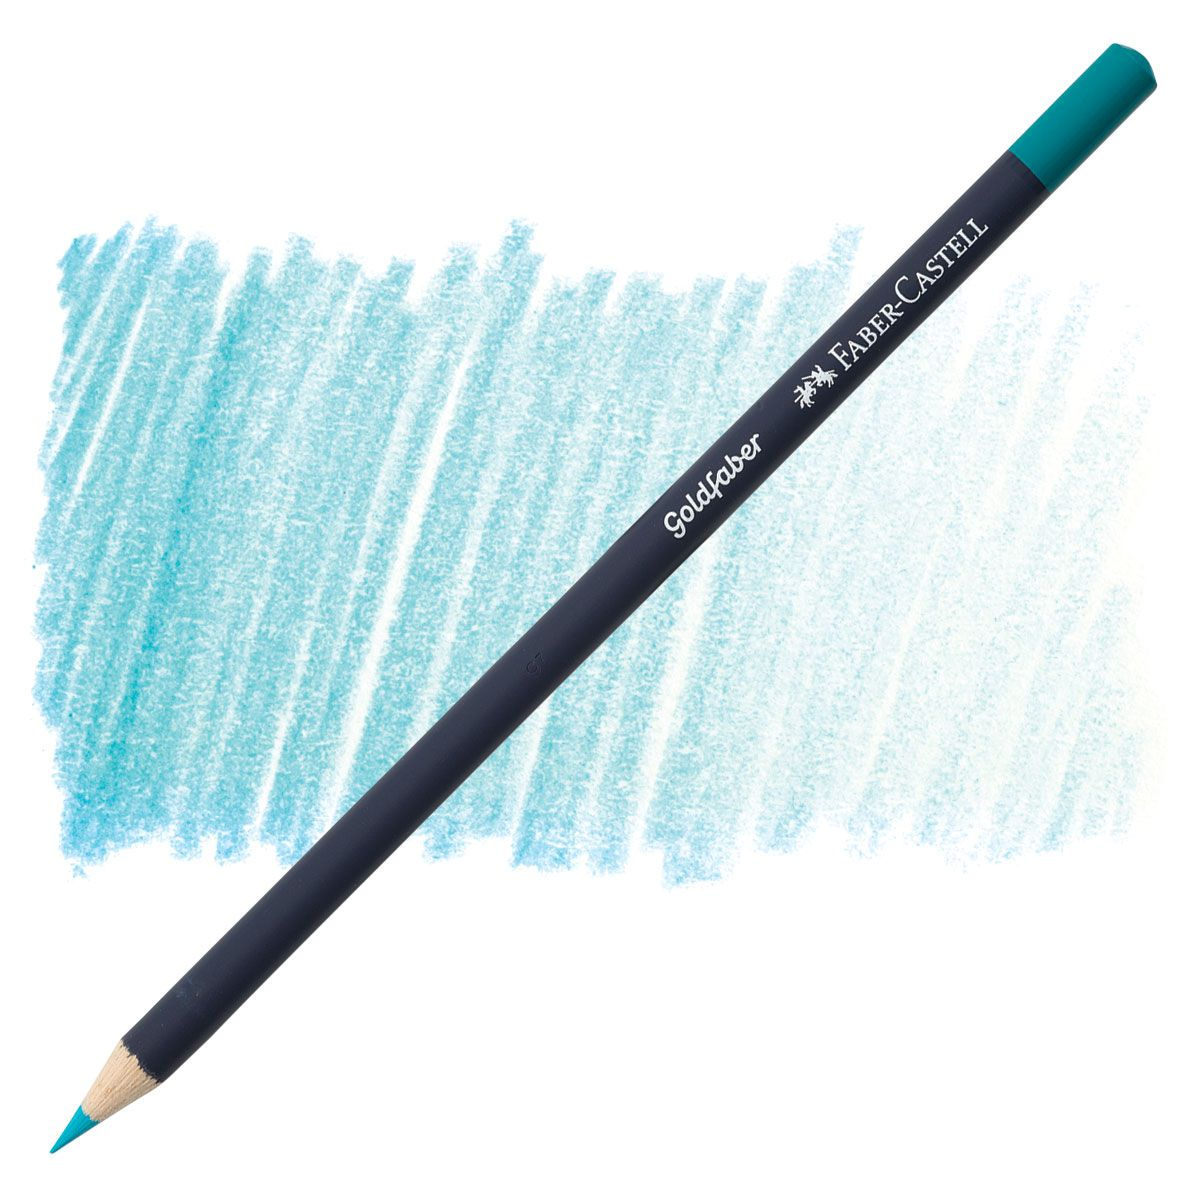 Regular Colored Pencil Light Cobalt Turquoise By Faber Castell